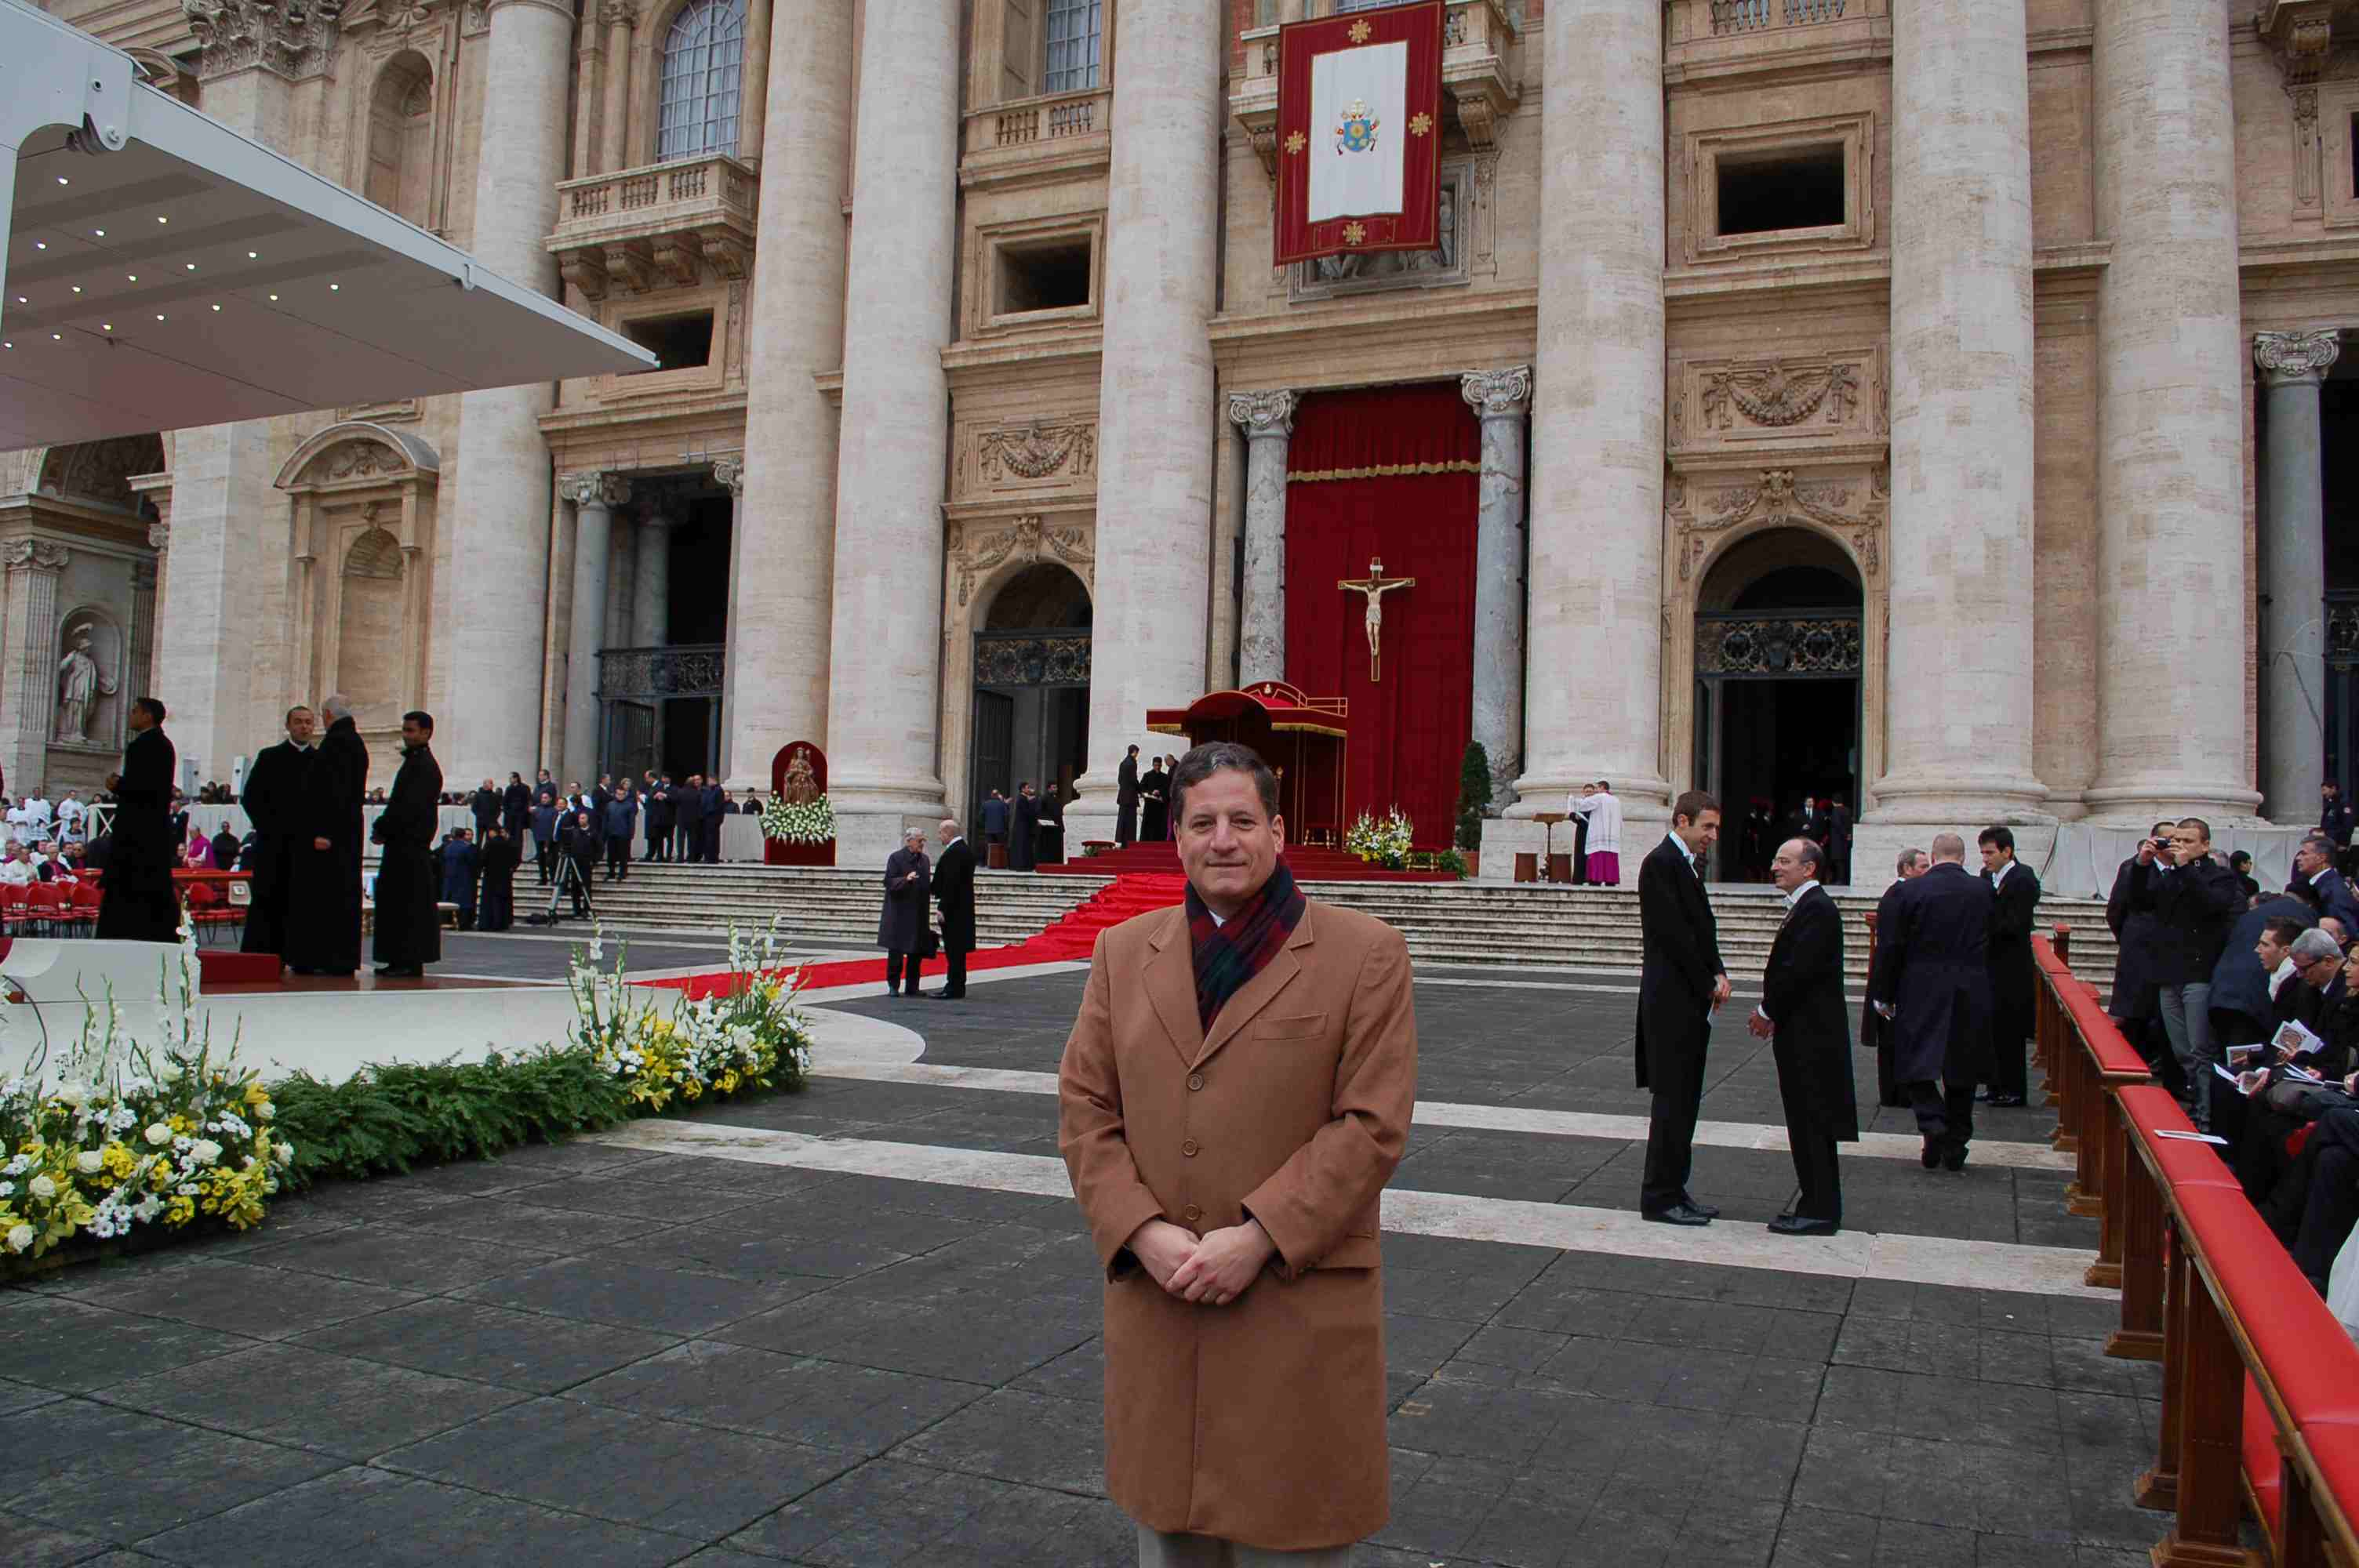 Thomas McKenna awaiting the Papal Mass